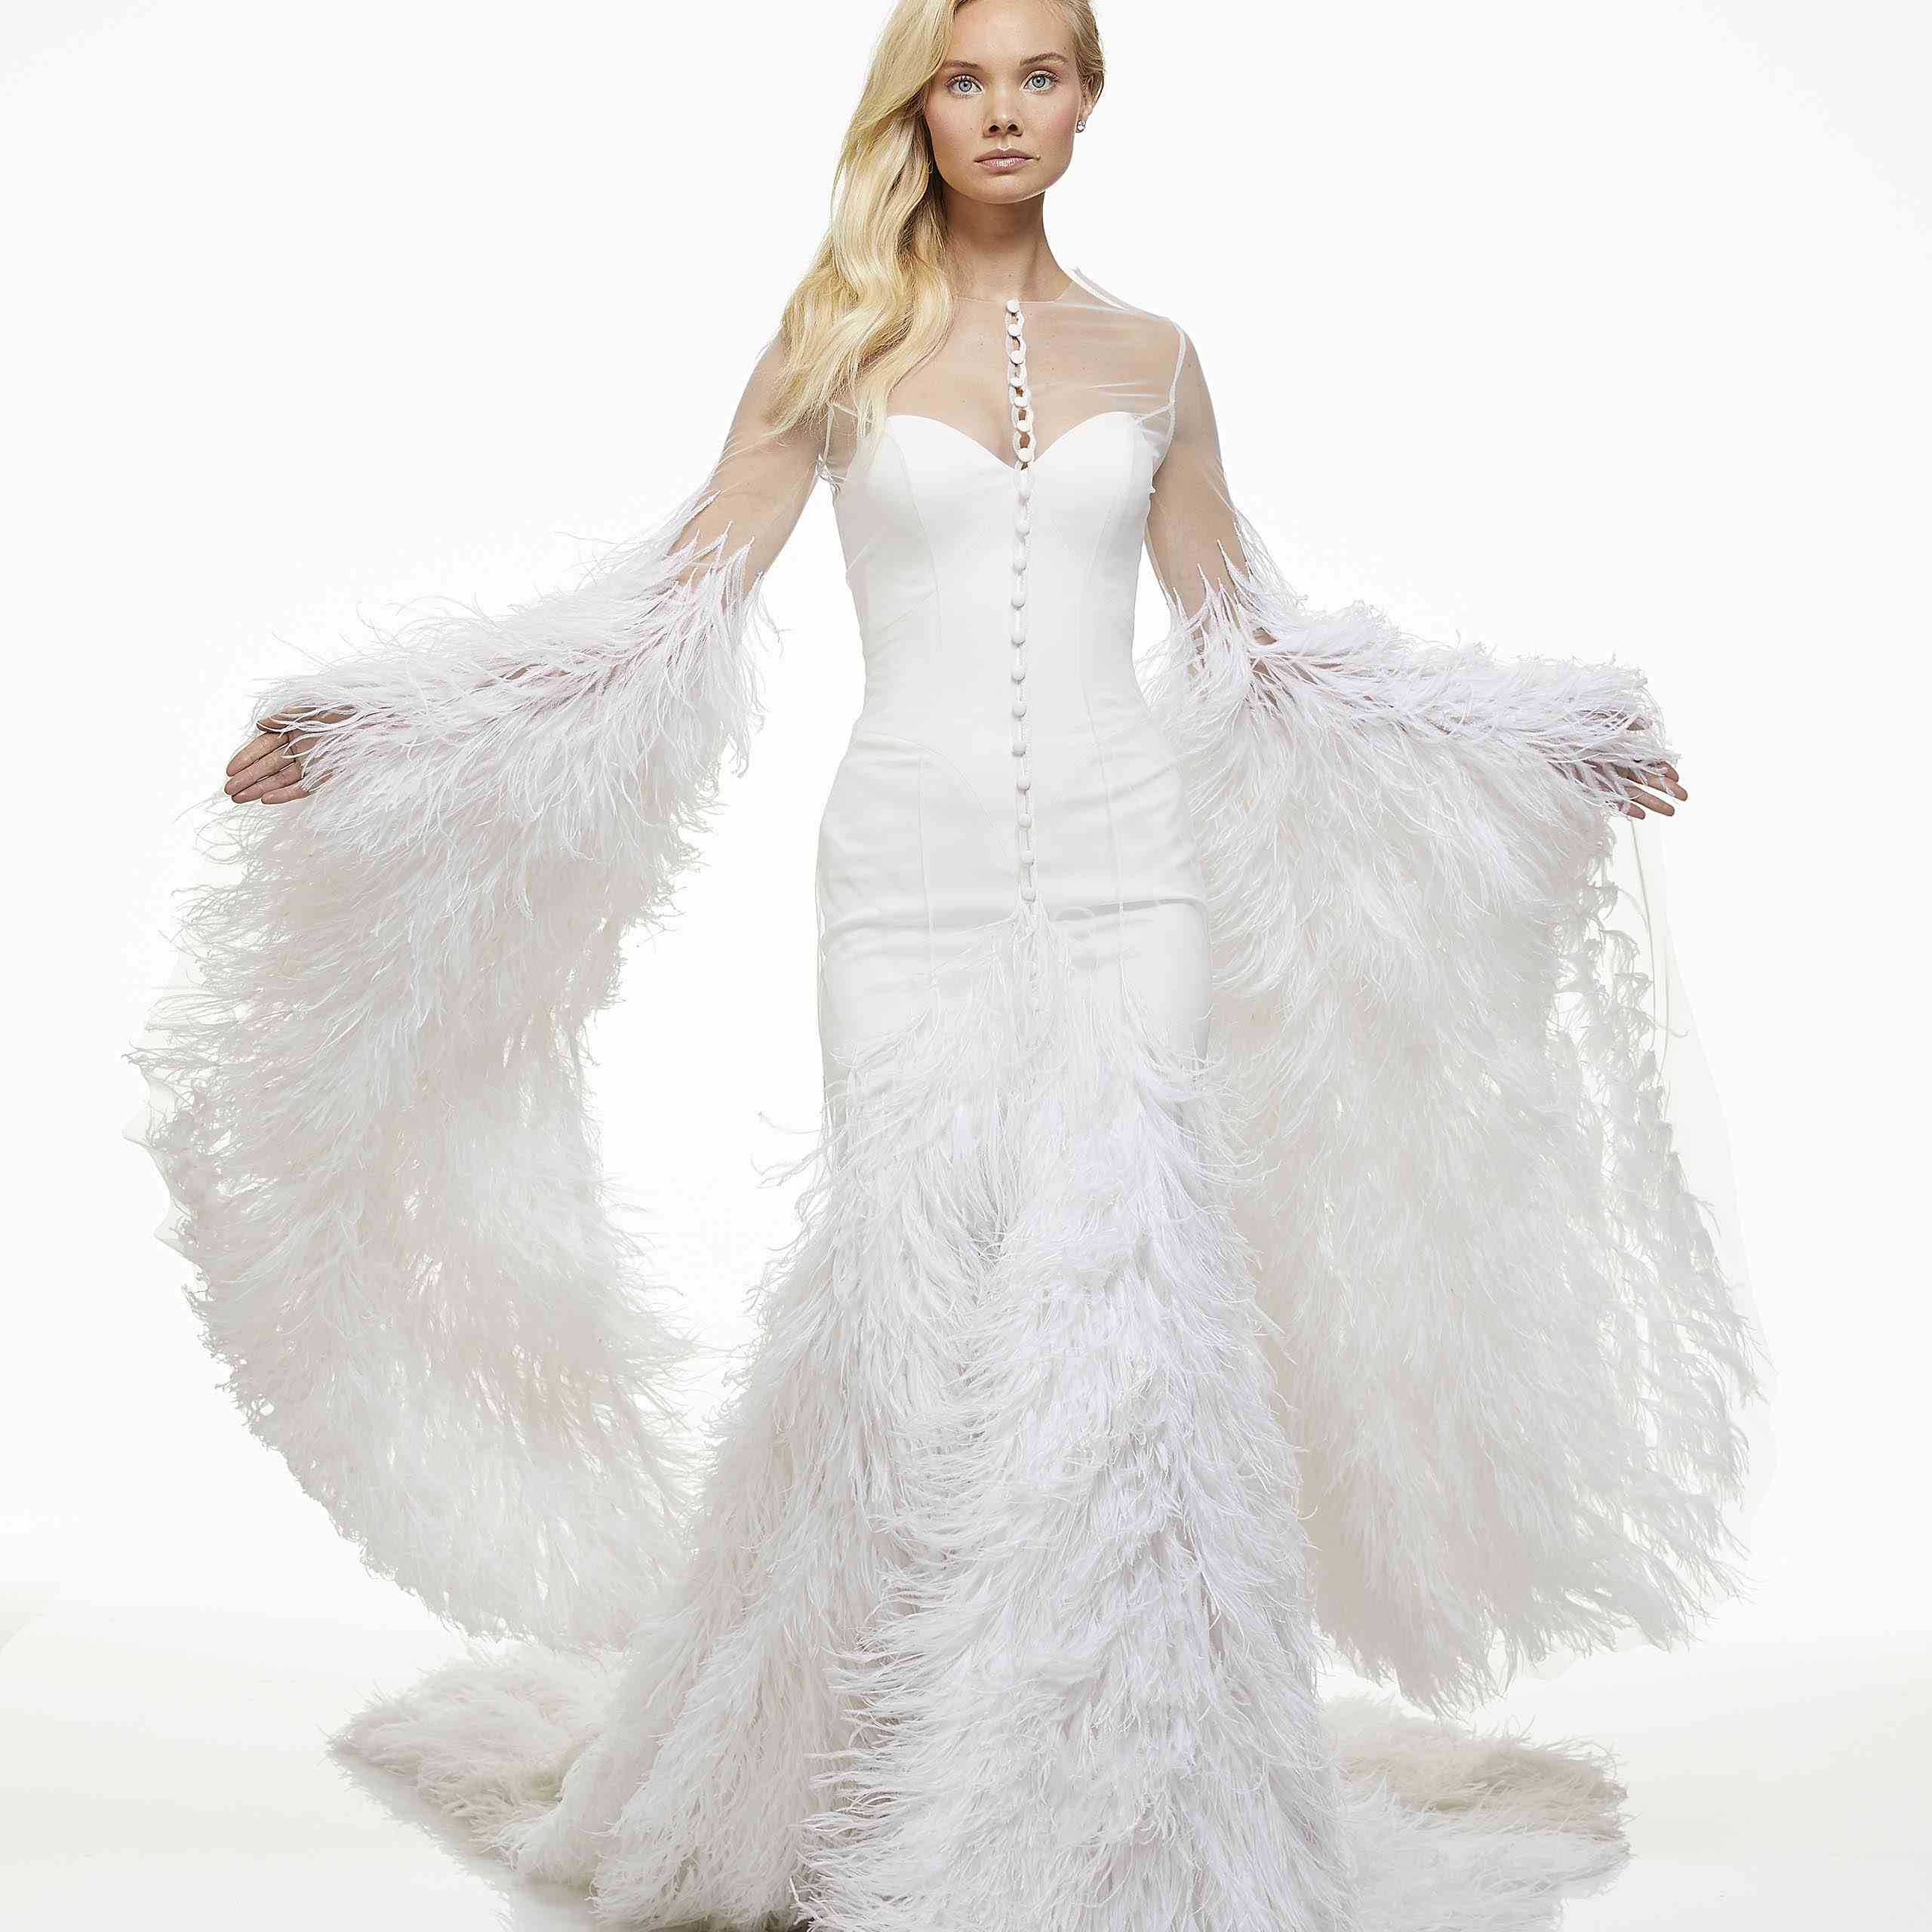 Model in long sleeve wedding dress with feathers